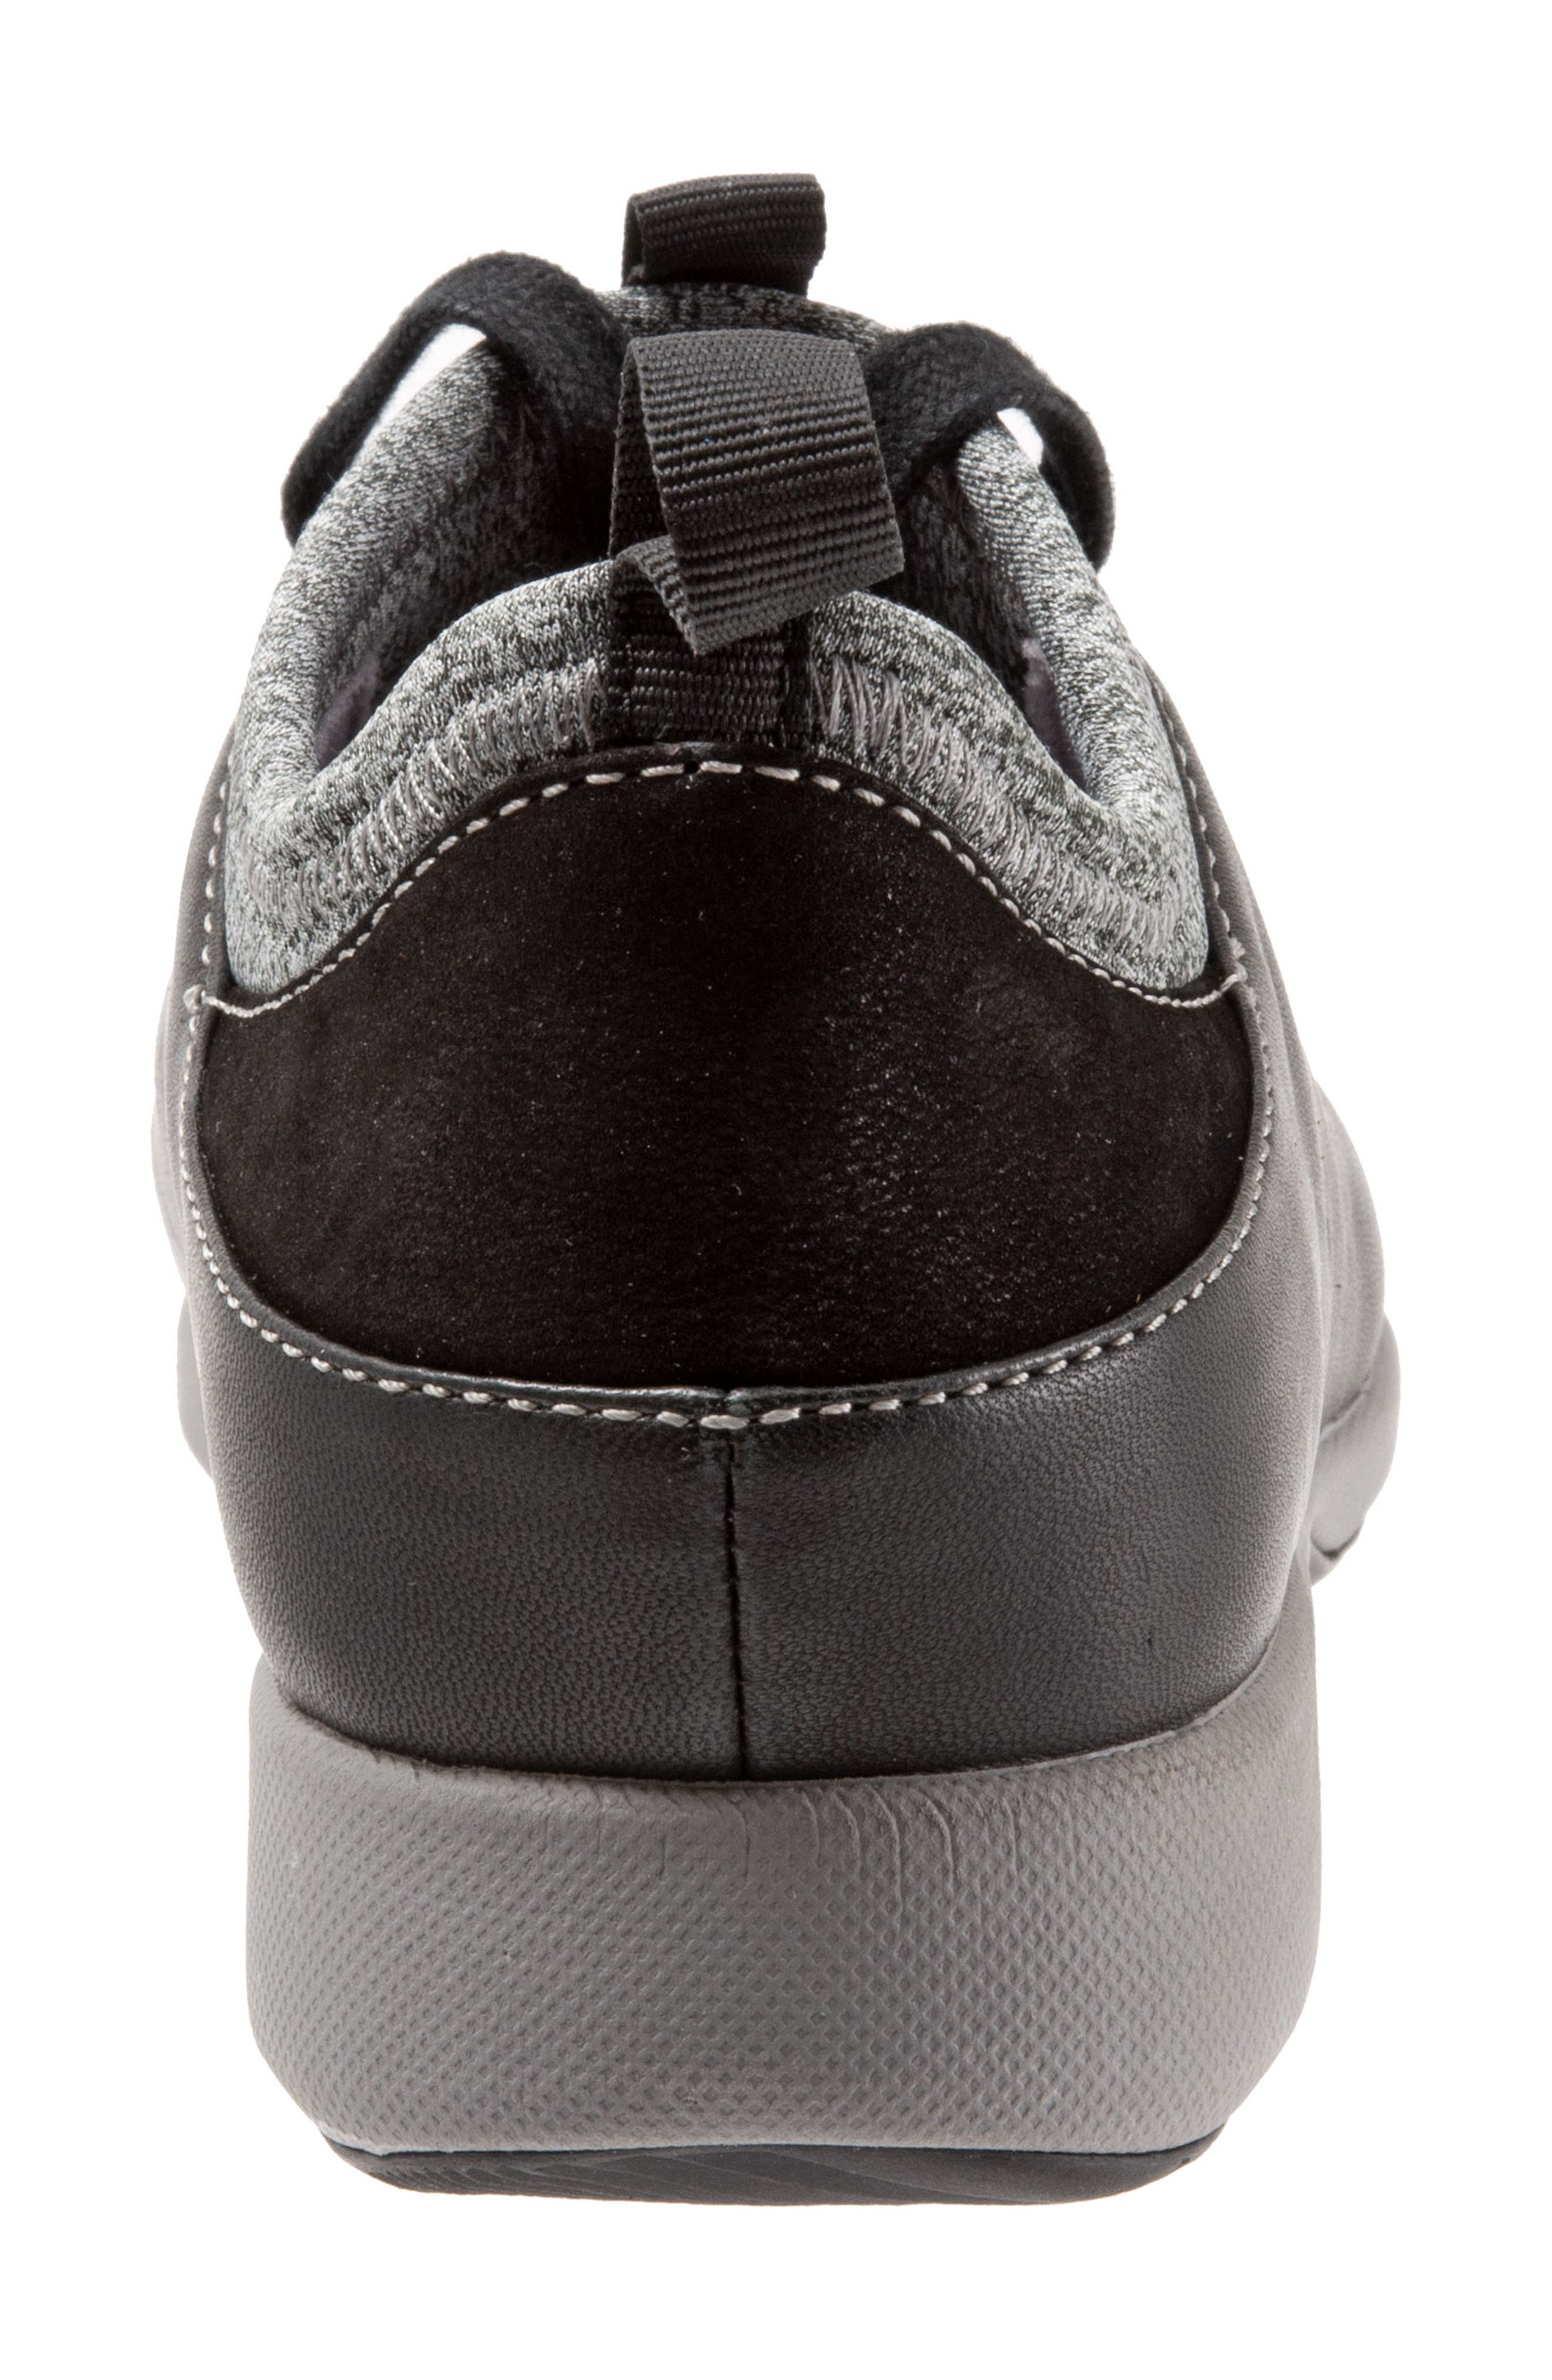 SAVA Haven Sneaker,                             Alternate thumbnail 7, color,                             BLACK/ GREY LEATHER